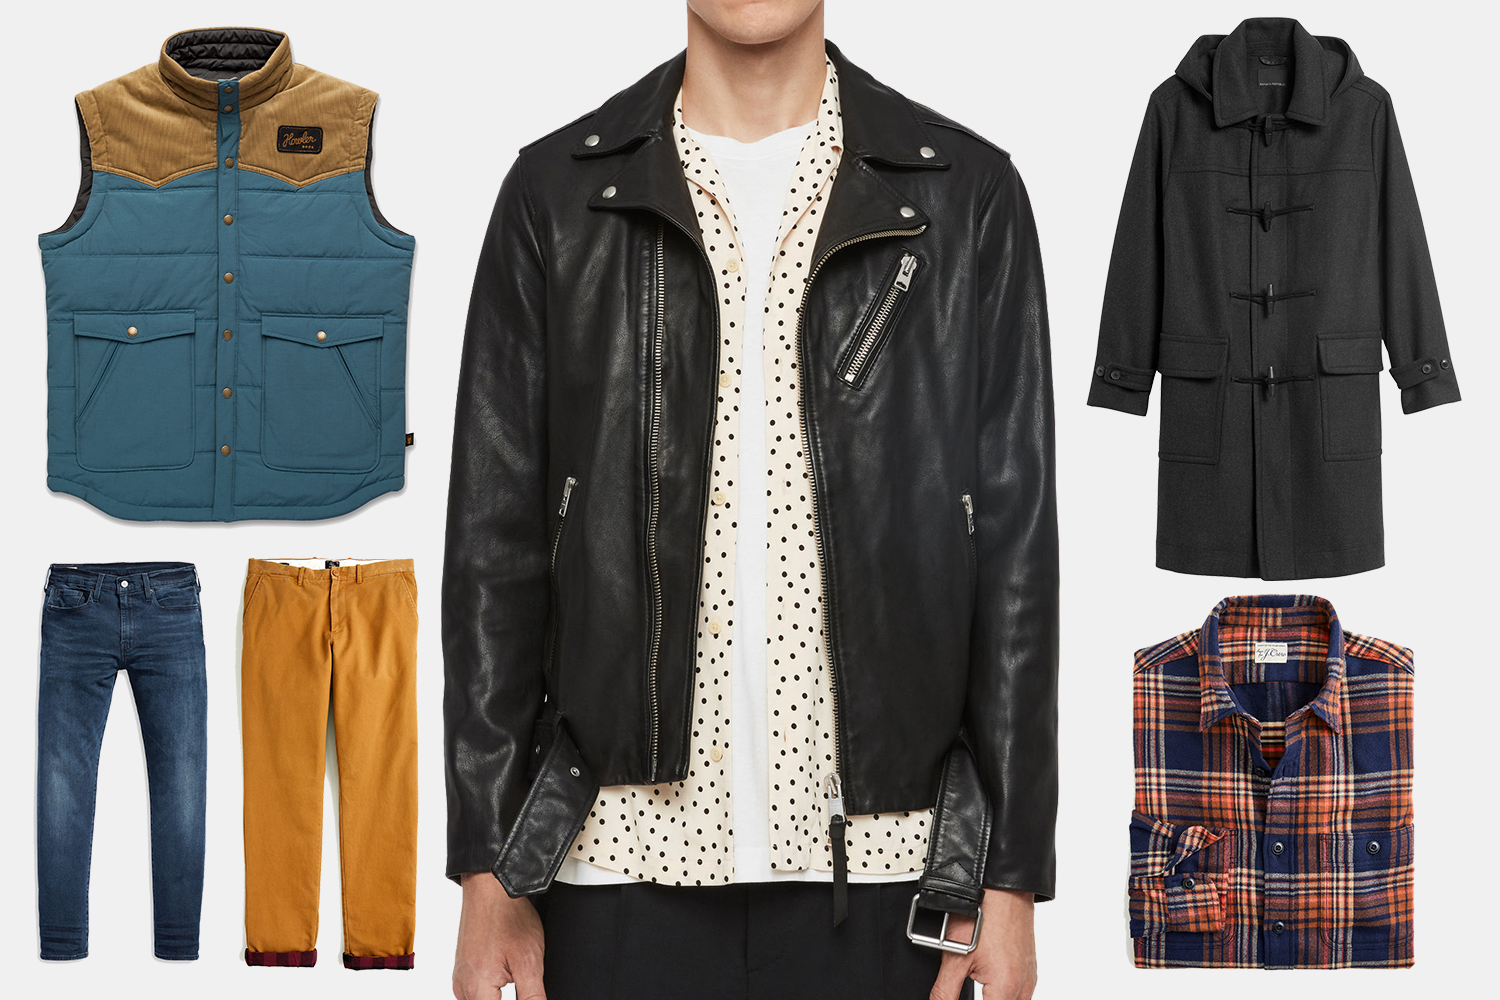 The 10 Best Black Friday Menswear Sales InsideHook